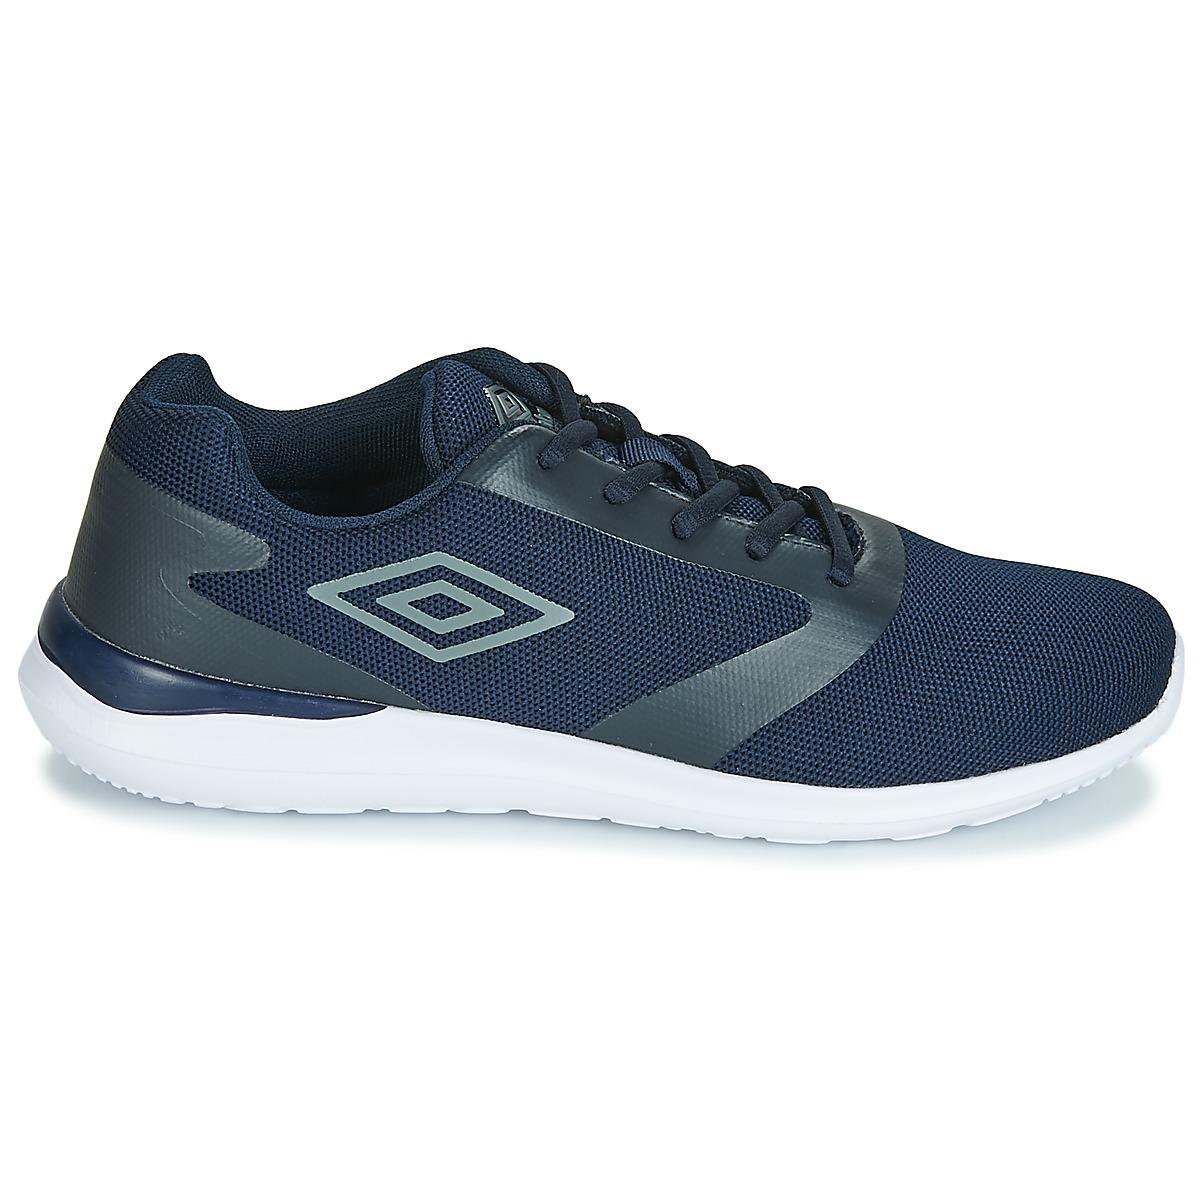 59b67e49 Umbro Fabby Shoes (trainers) in Blue for Men - Lyst